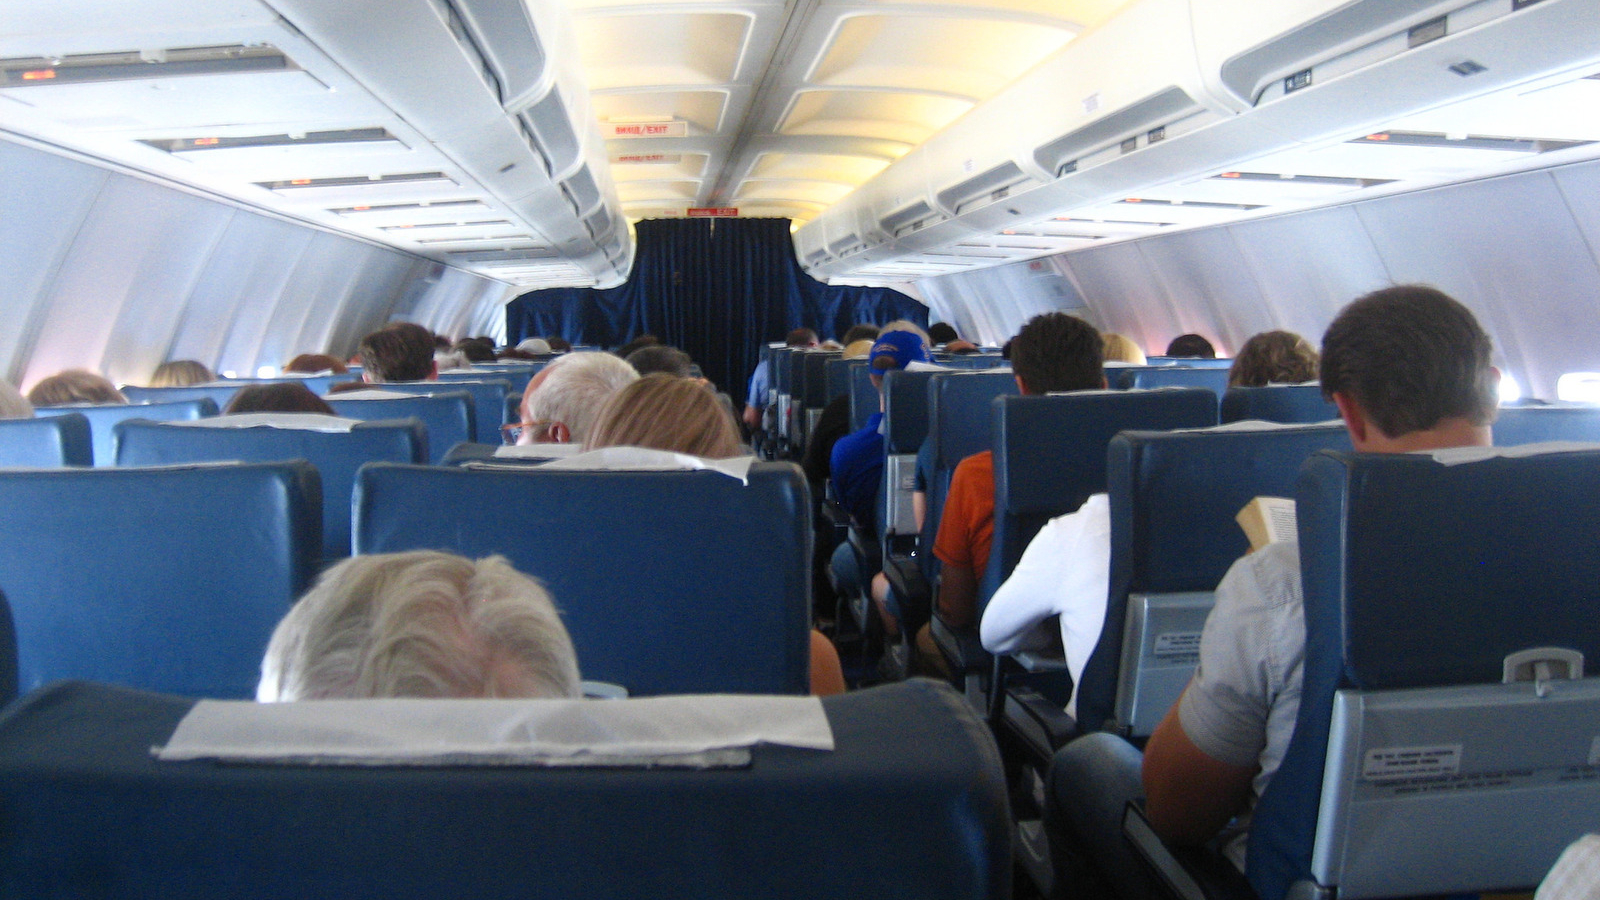 Since the inception of commercial air travel, the insides of airplane cabins have been associated with a higher likelihood of catching a cold or other spreadable disease. New research has sought out to see if scientific facts back up those sentiments.